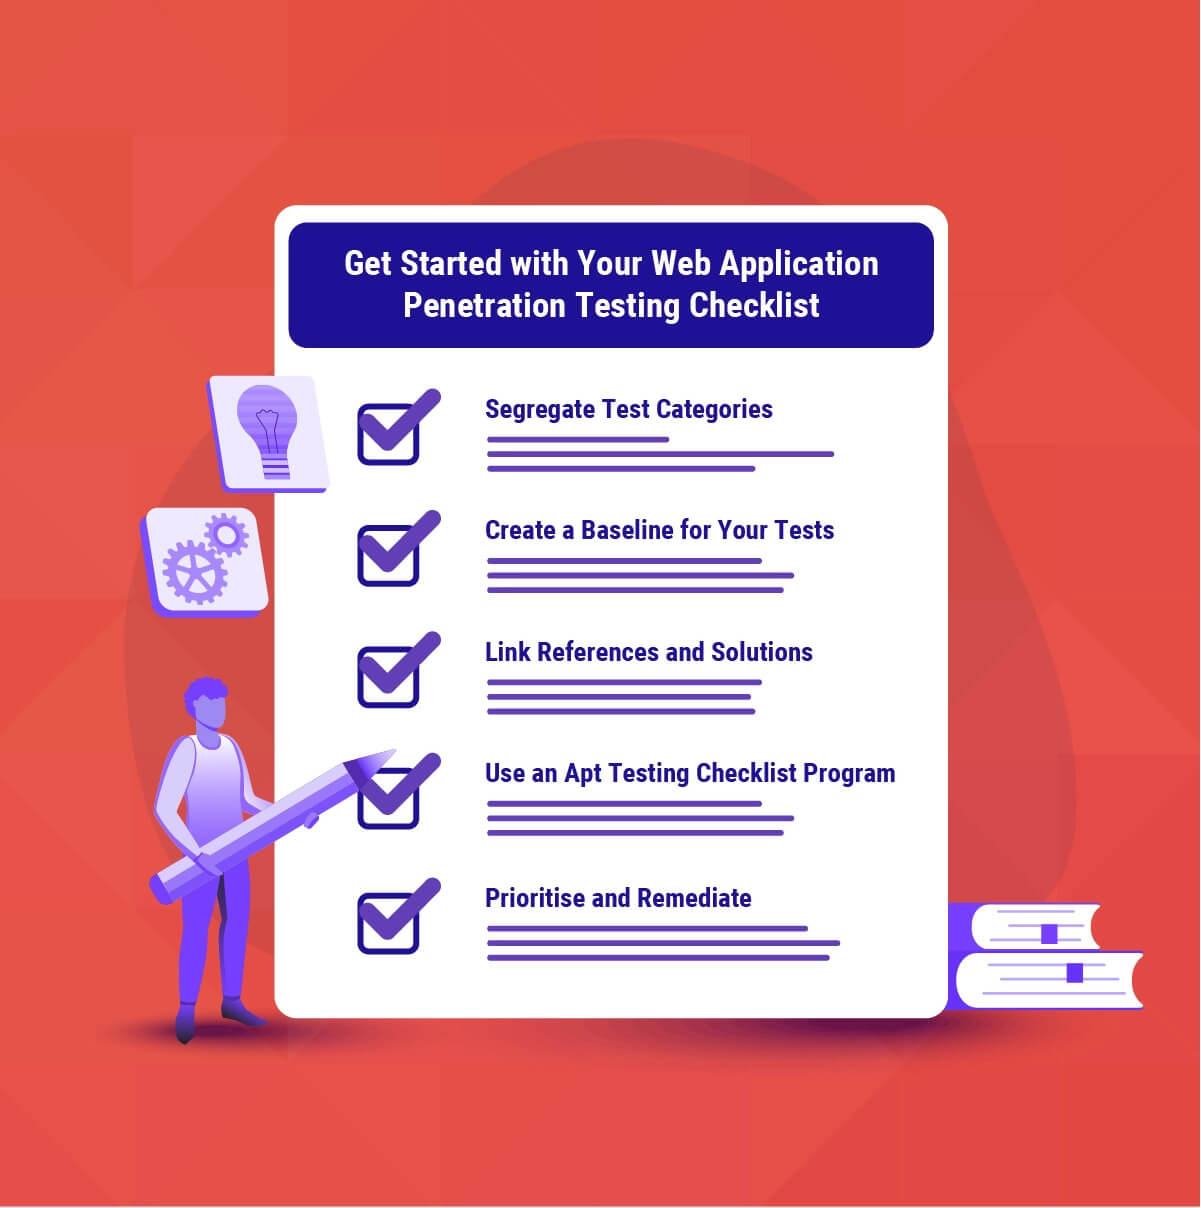 5 Tips to Get Started with Your Web Application Penetration Testing Checklist